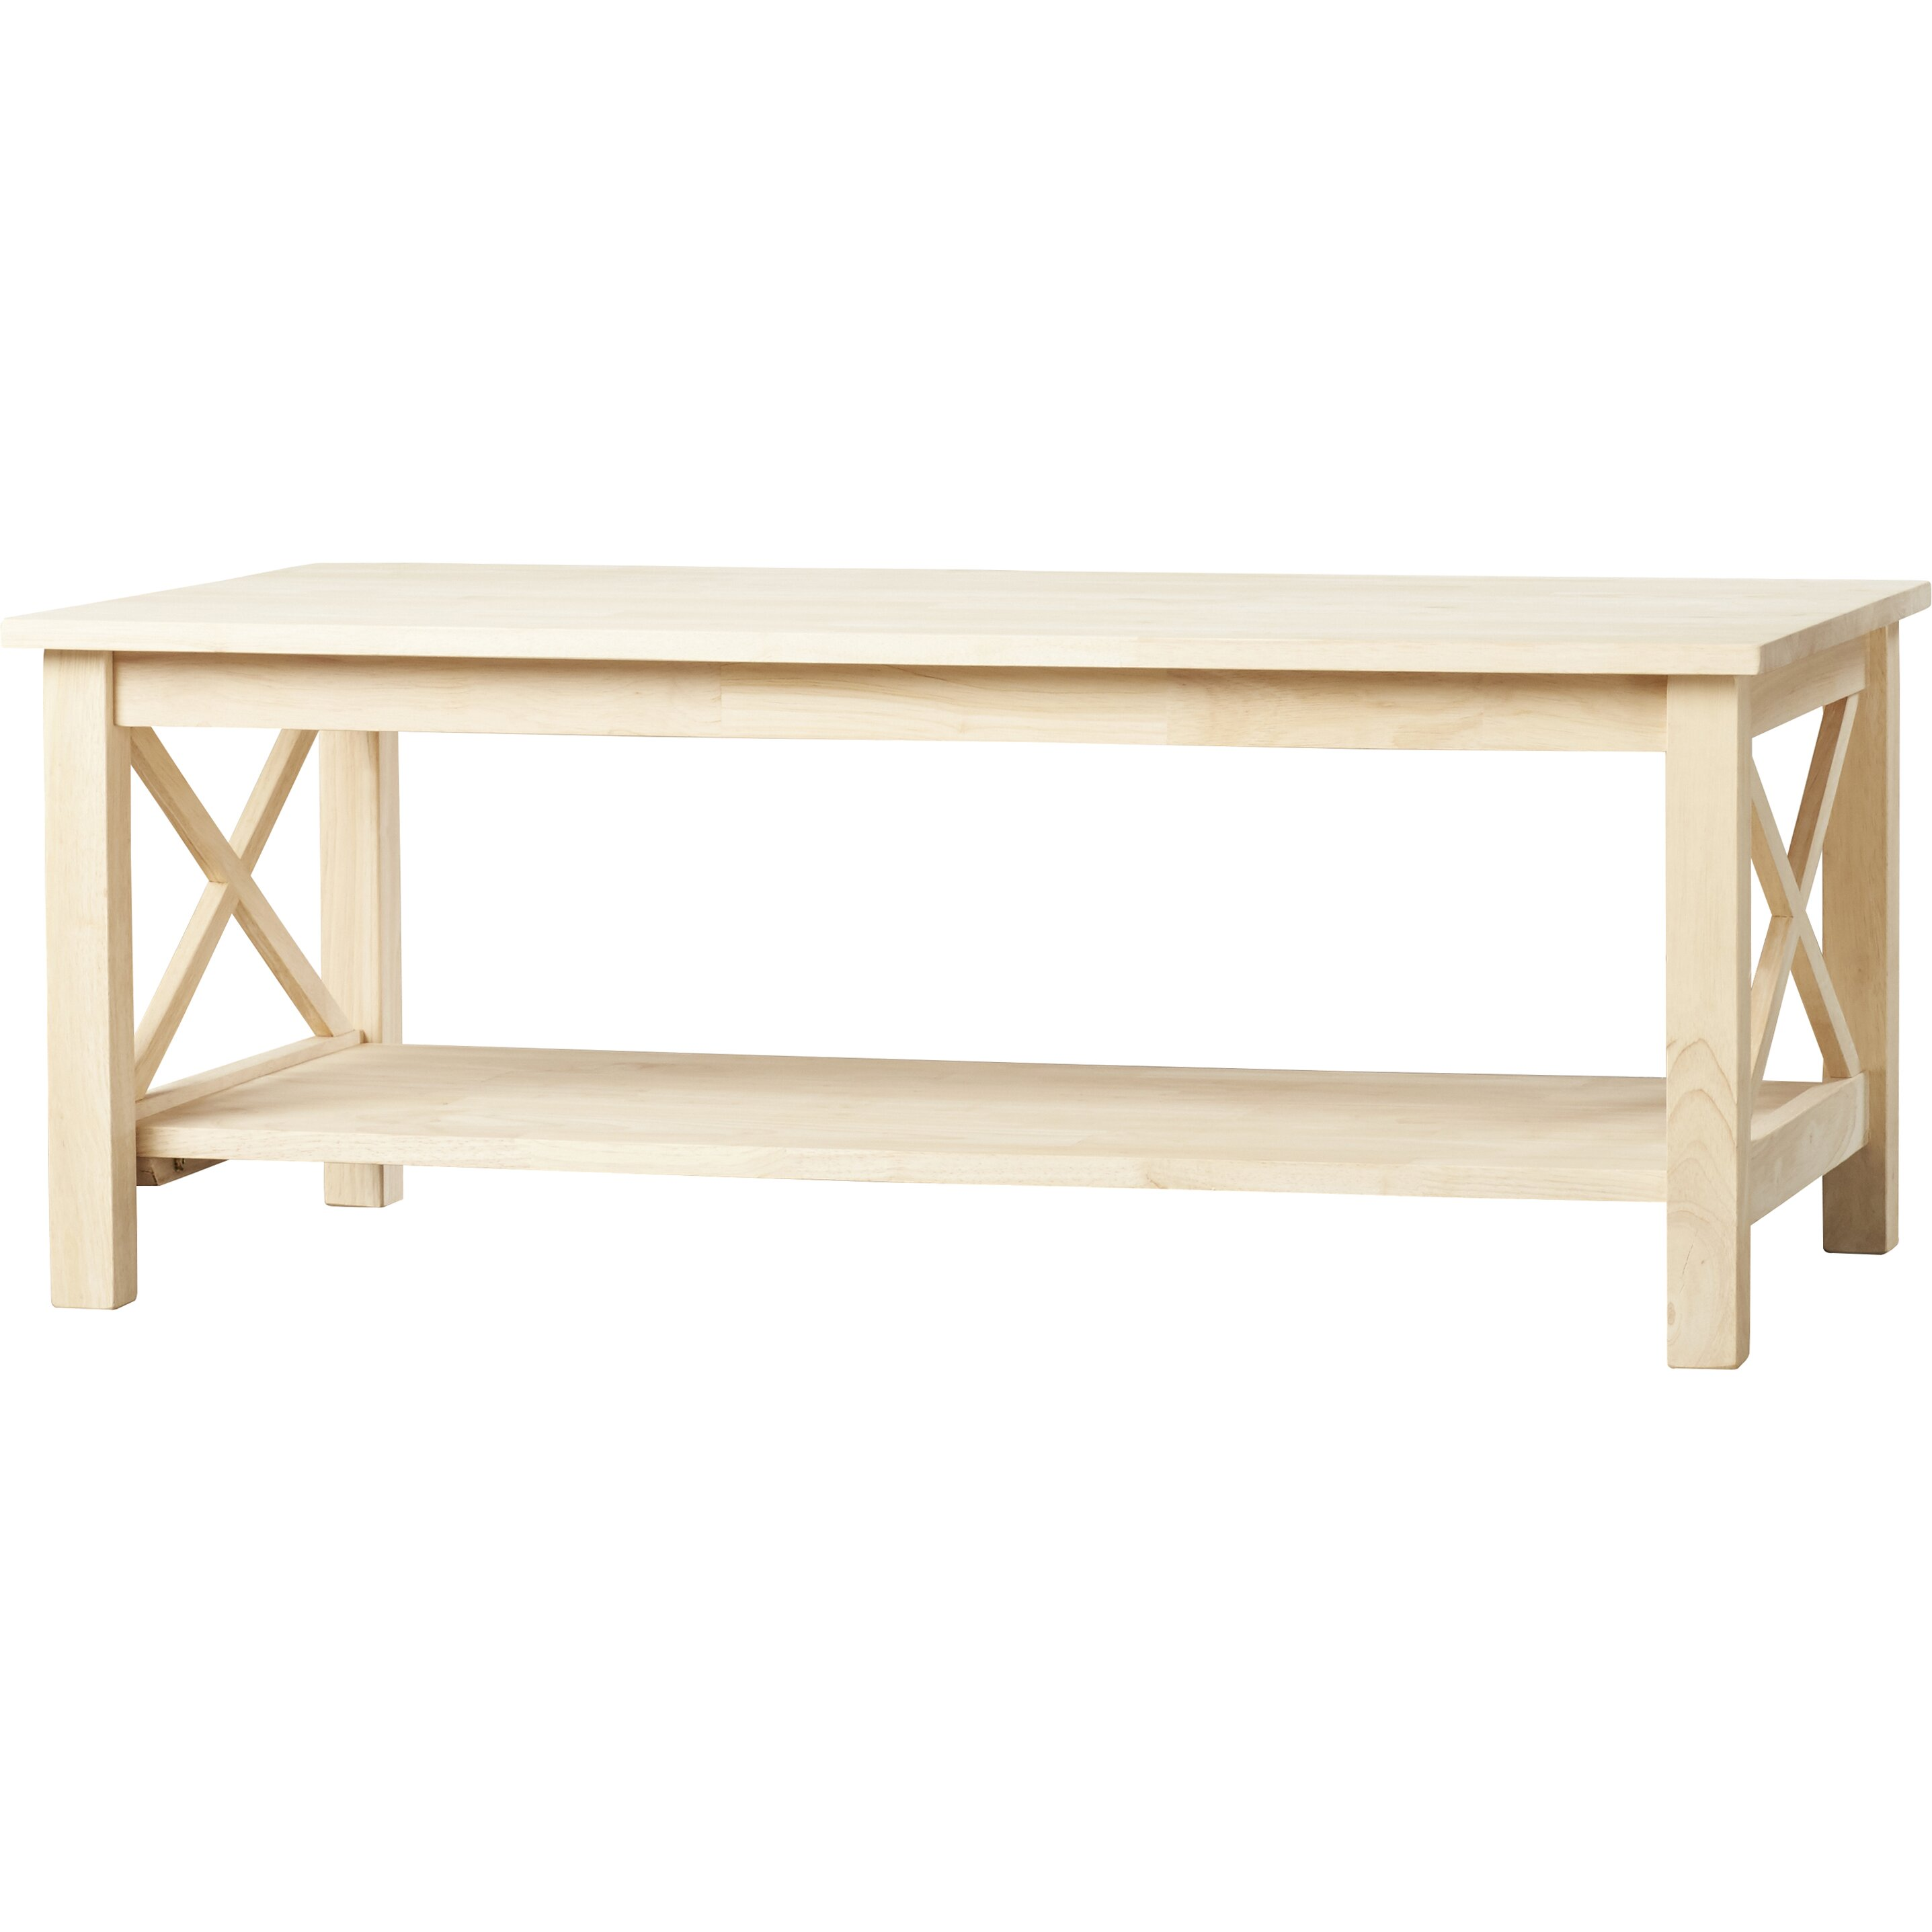 August grove towner x hampton coffee table reviews wayfair for Table x reviews